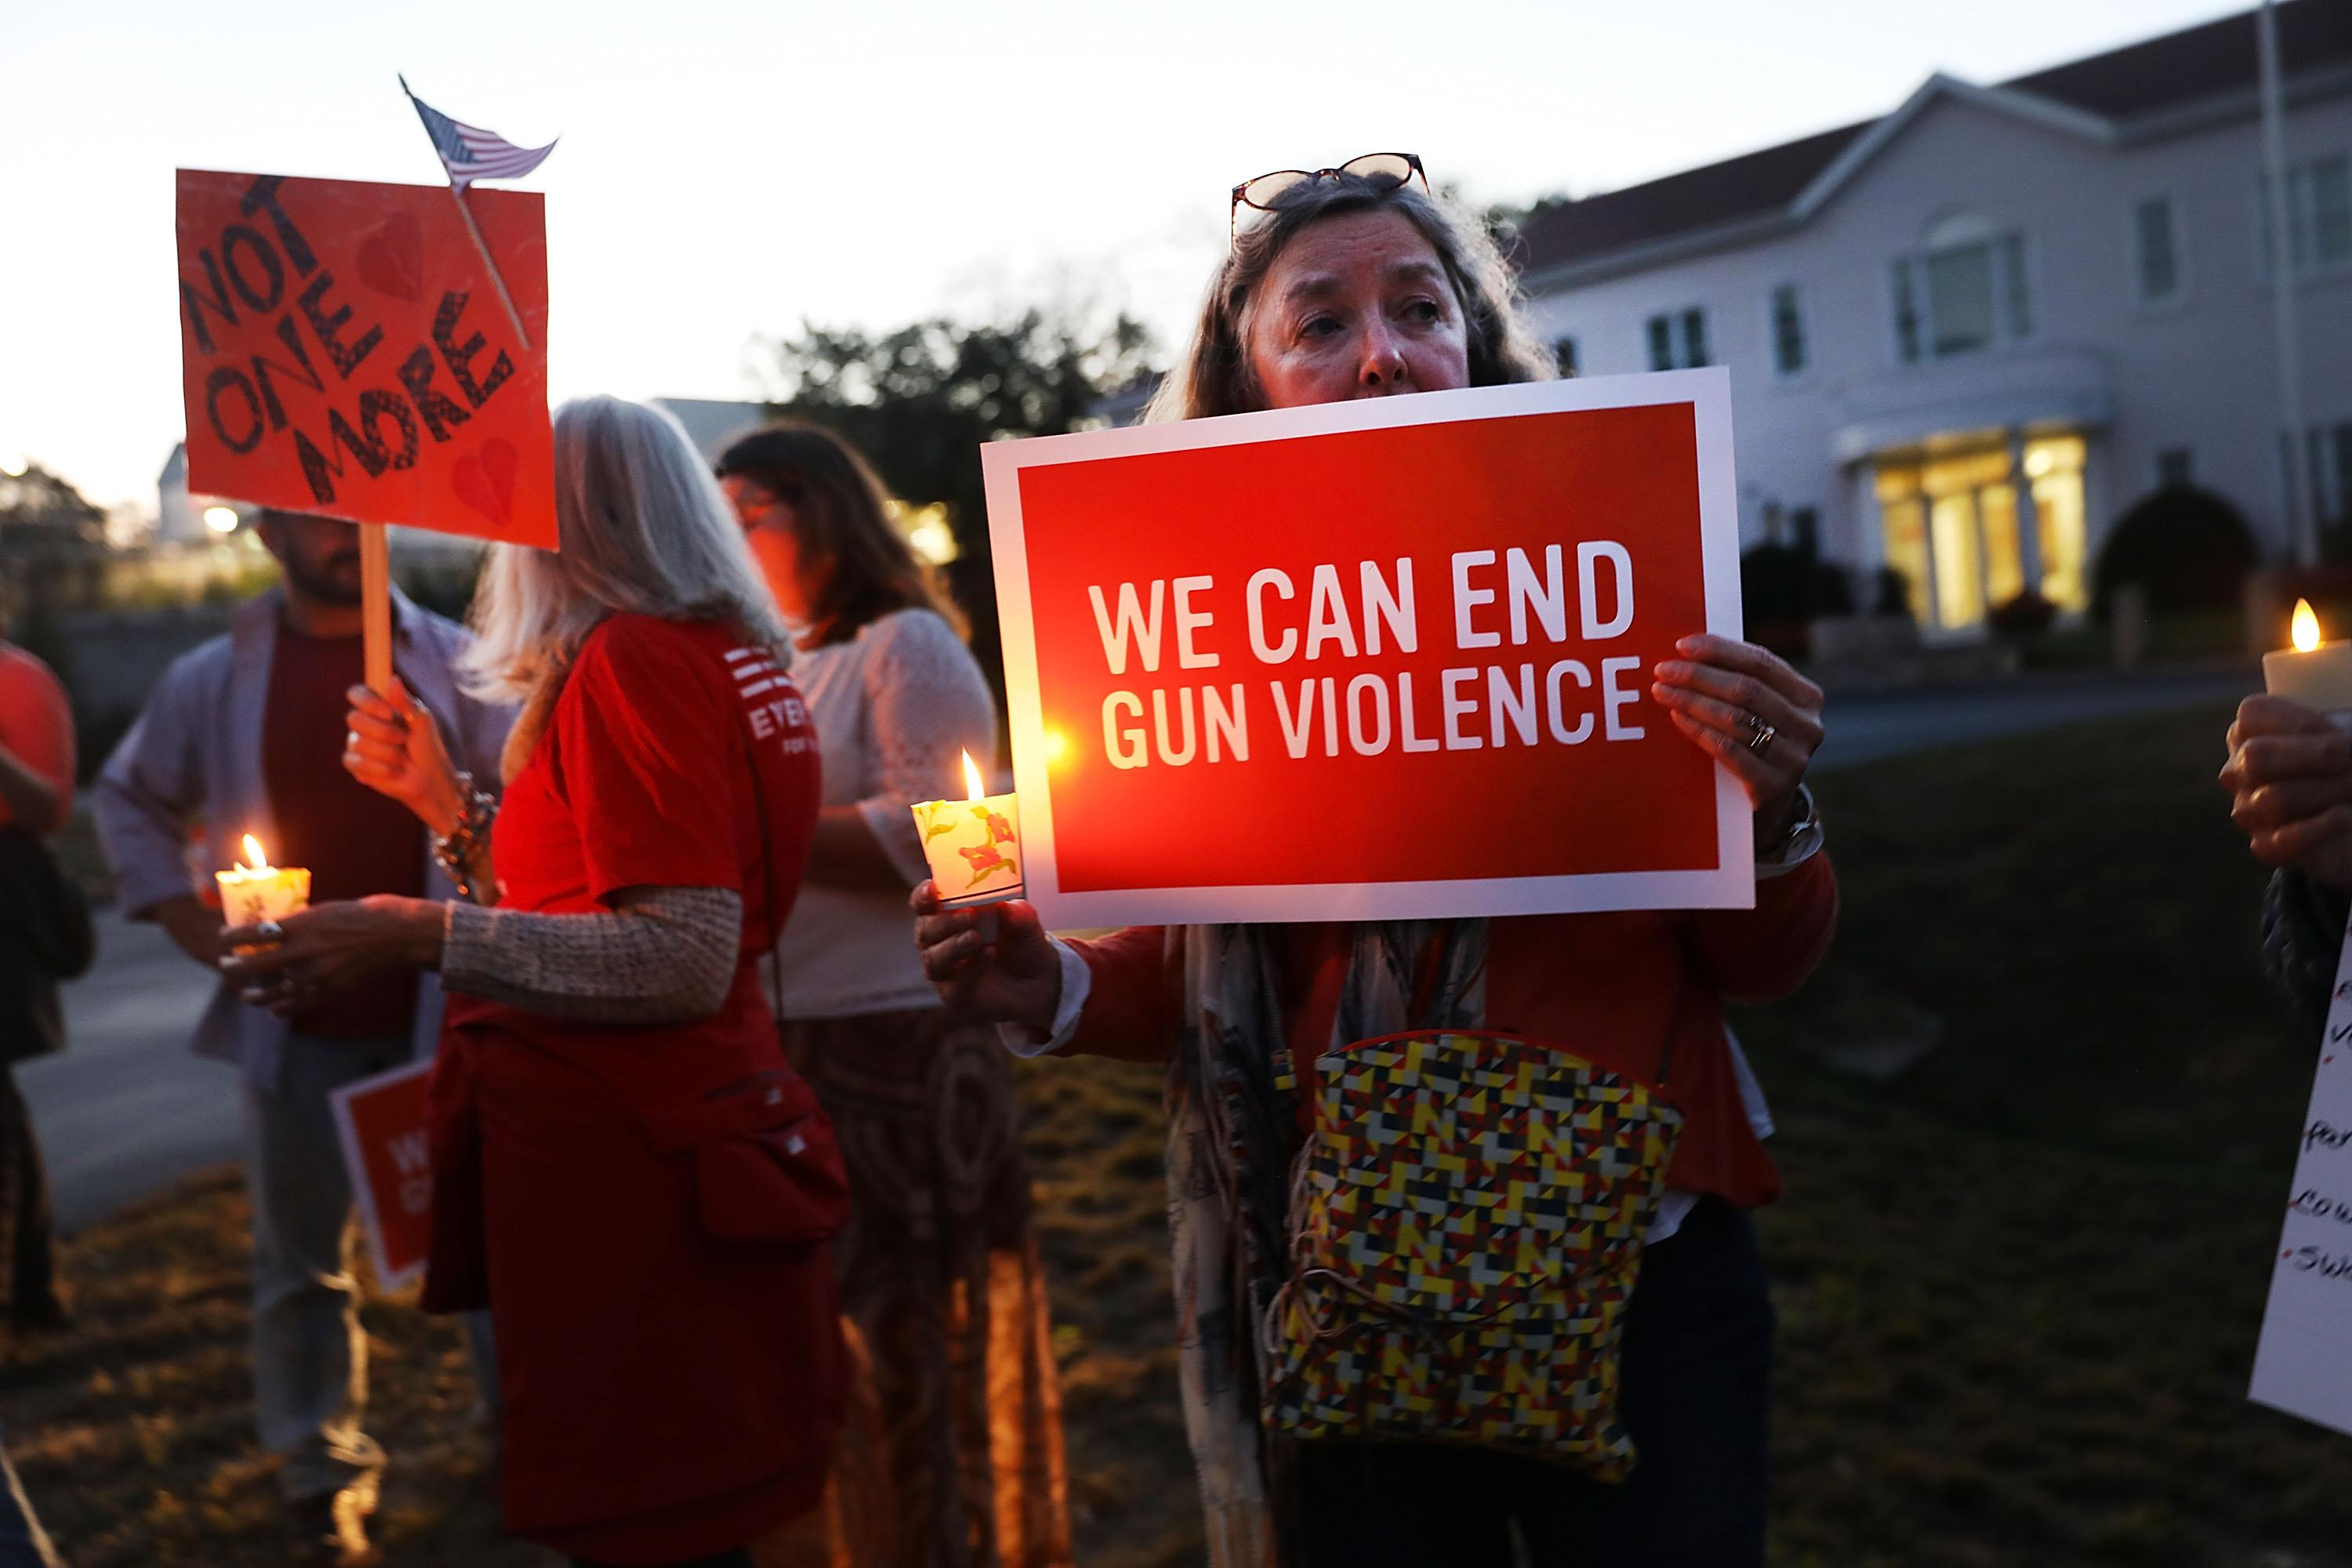 When will politicians actually do something about mass shootings?